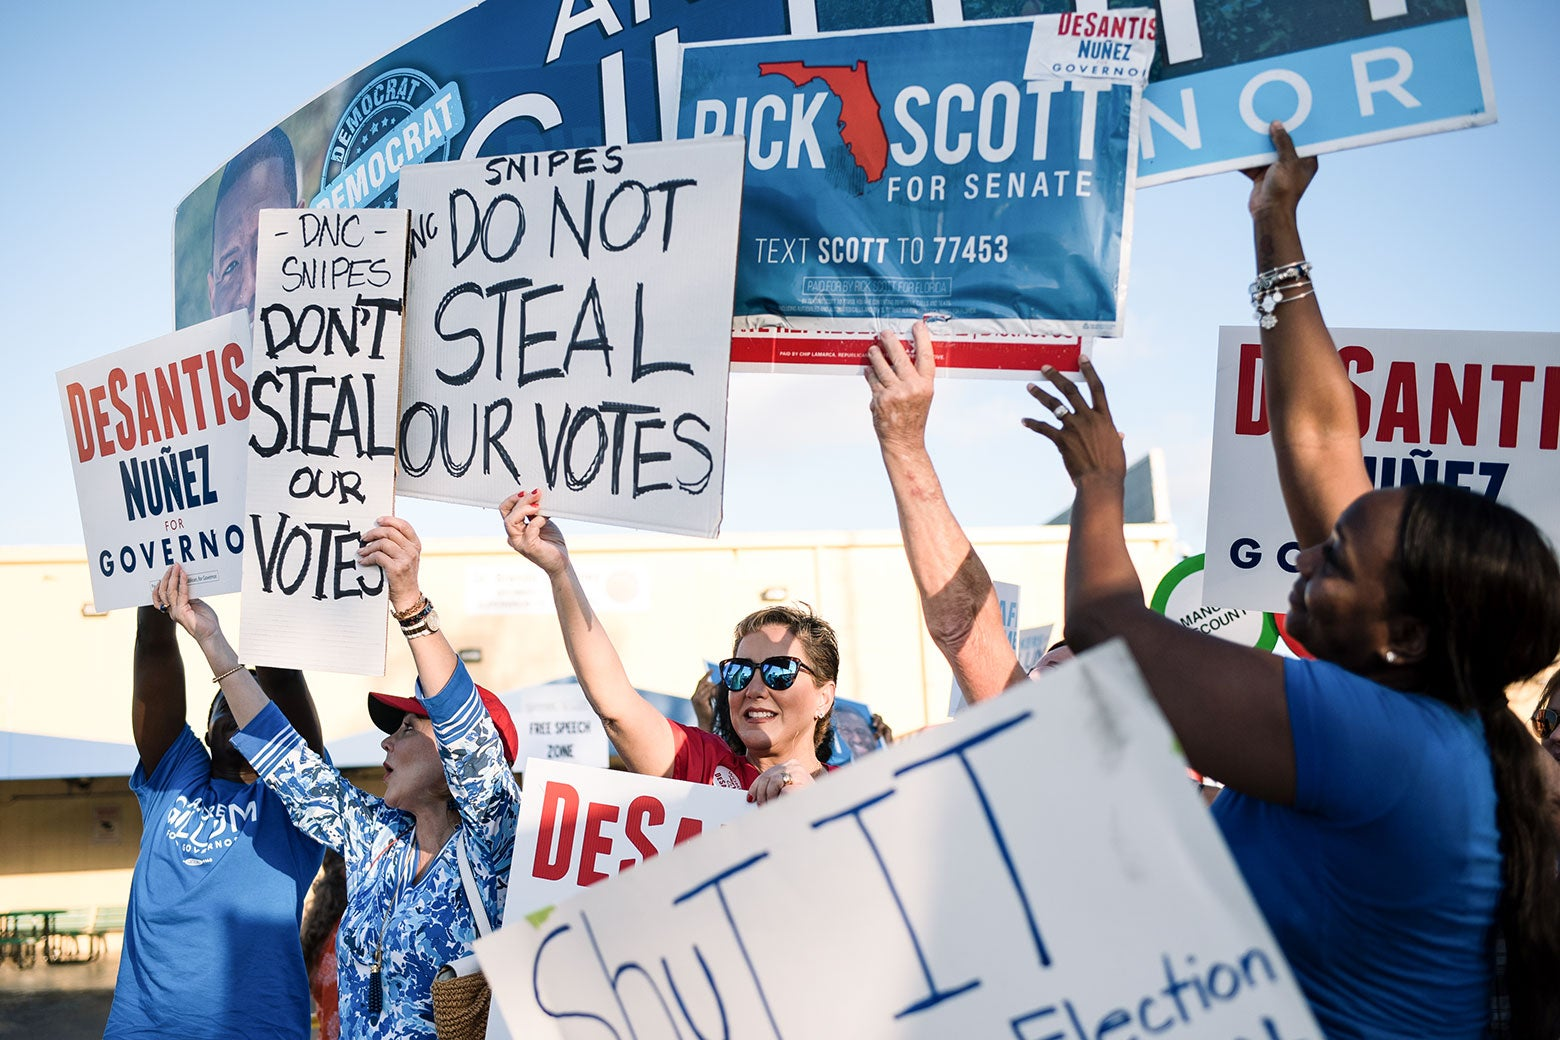 slate.com - Richard L. Hasen - What's Happening in Florida Is a Nightmare. 2020 Could Be So Much Worse.